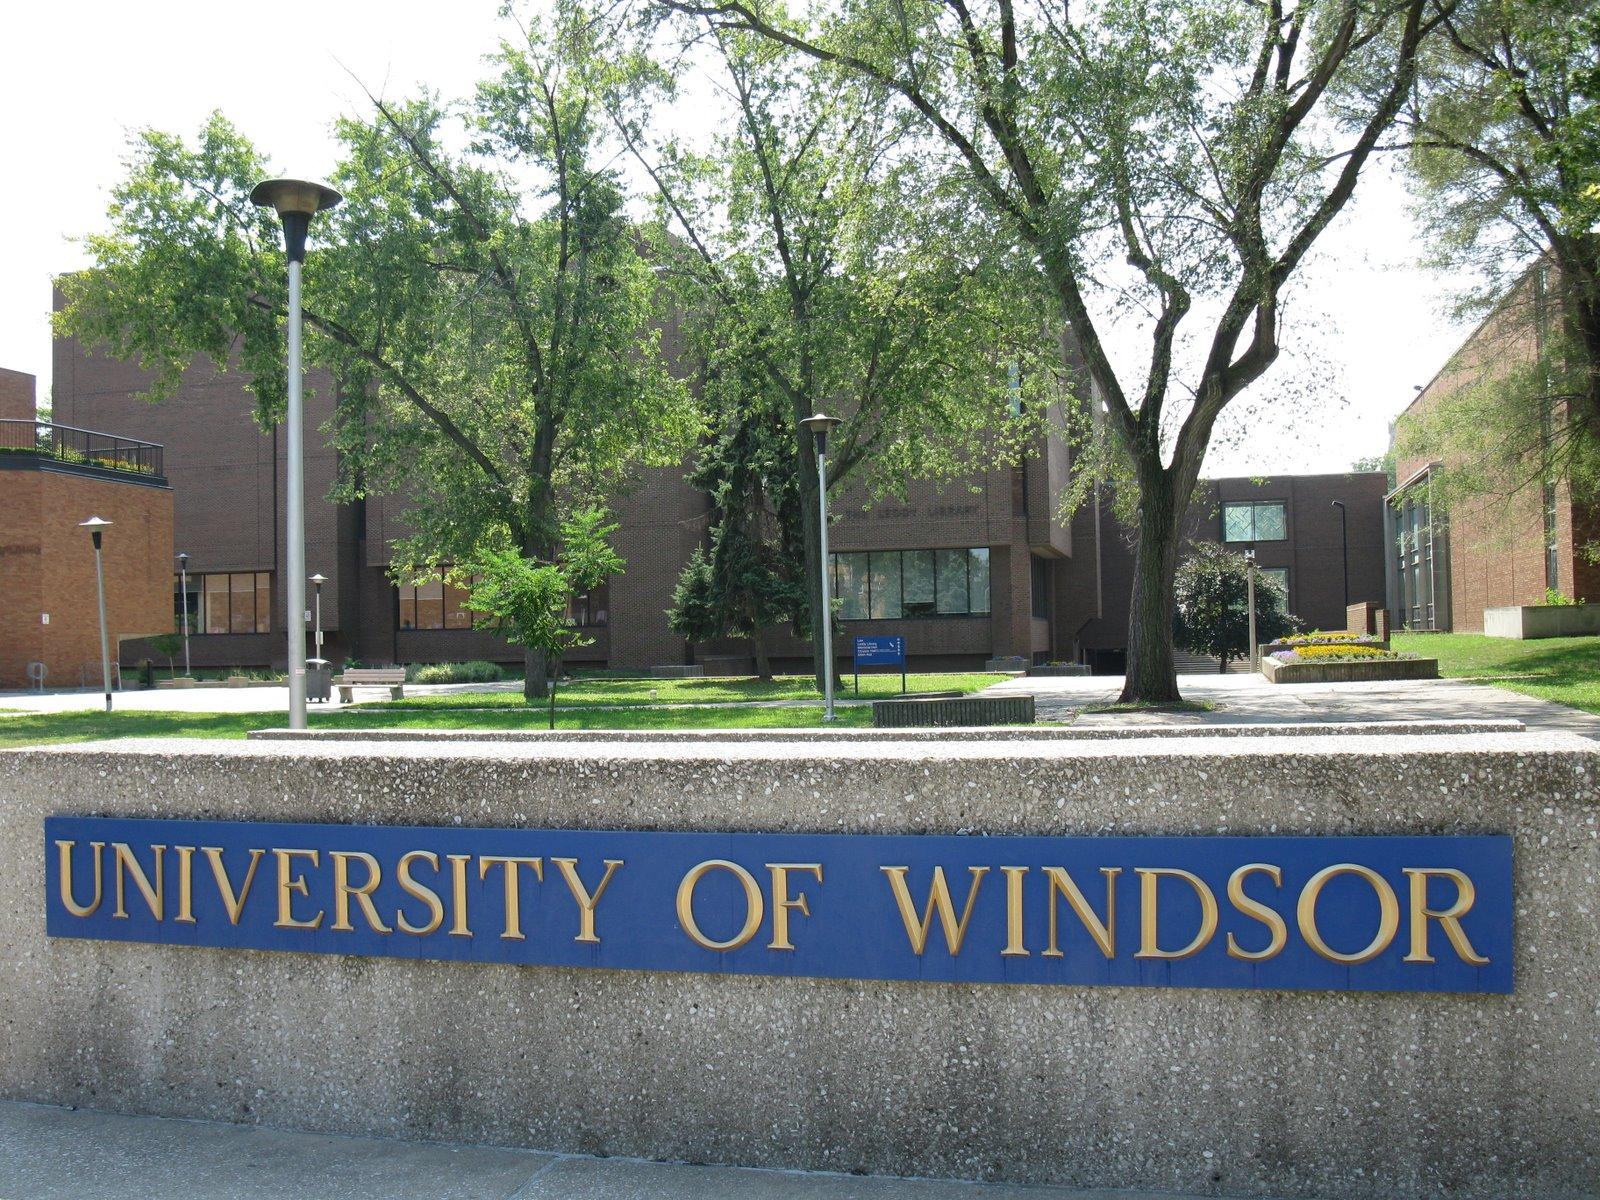 AM800-NEWS-UNIVERSITY-OF-WINDSOR-SIGN-STOCK-1